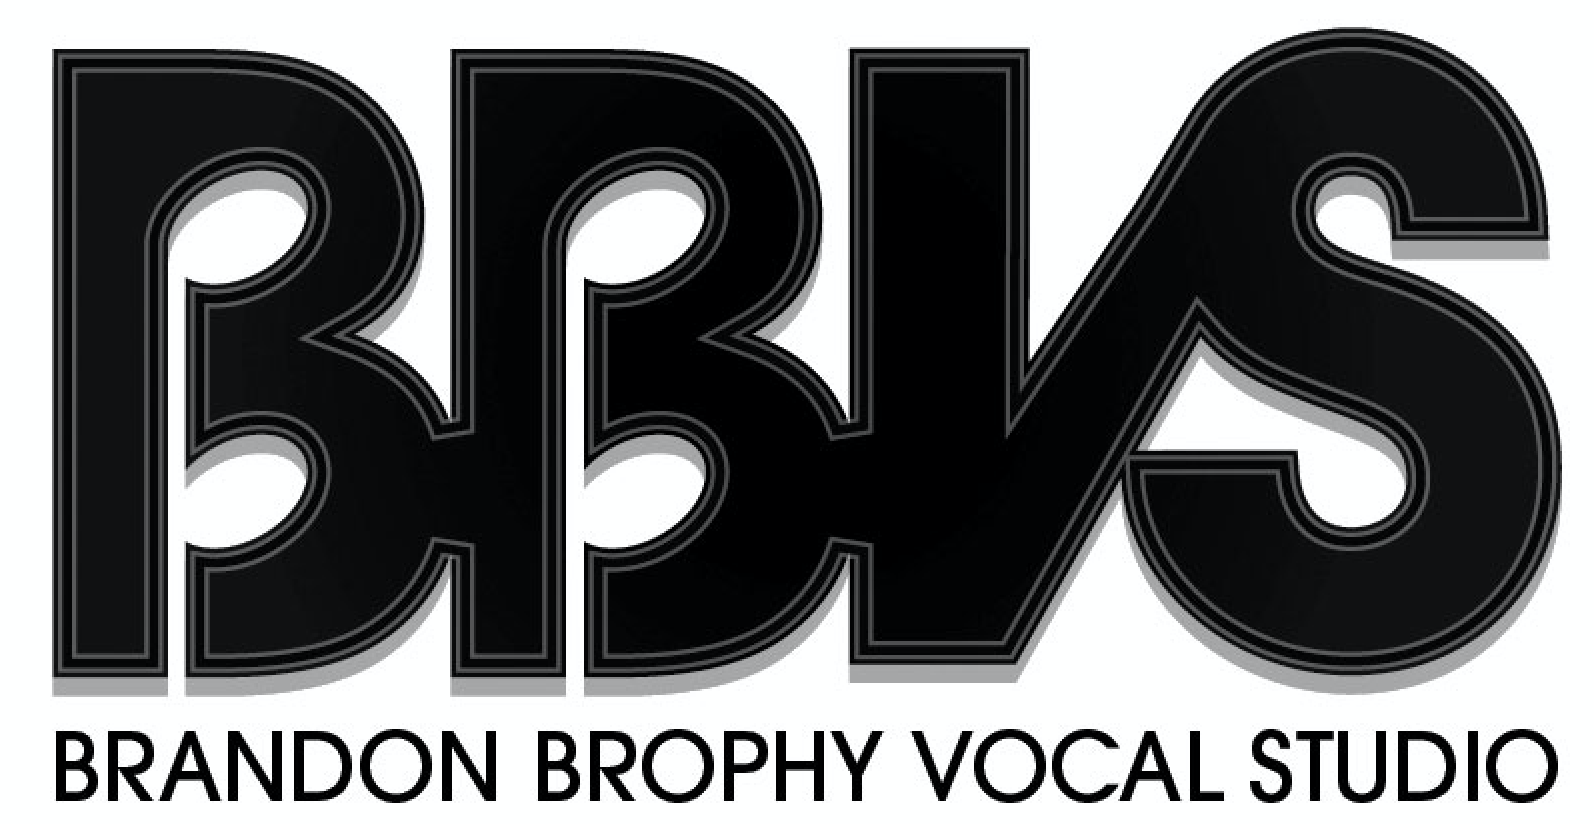 BBVS – Brandon Brophy Vocal Studios